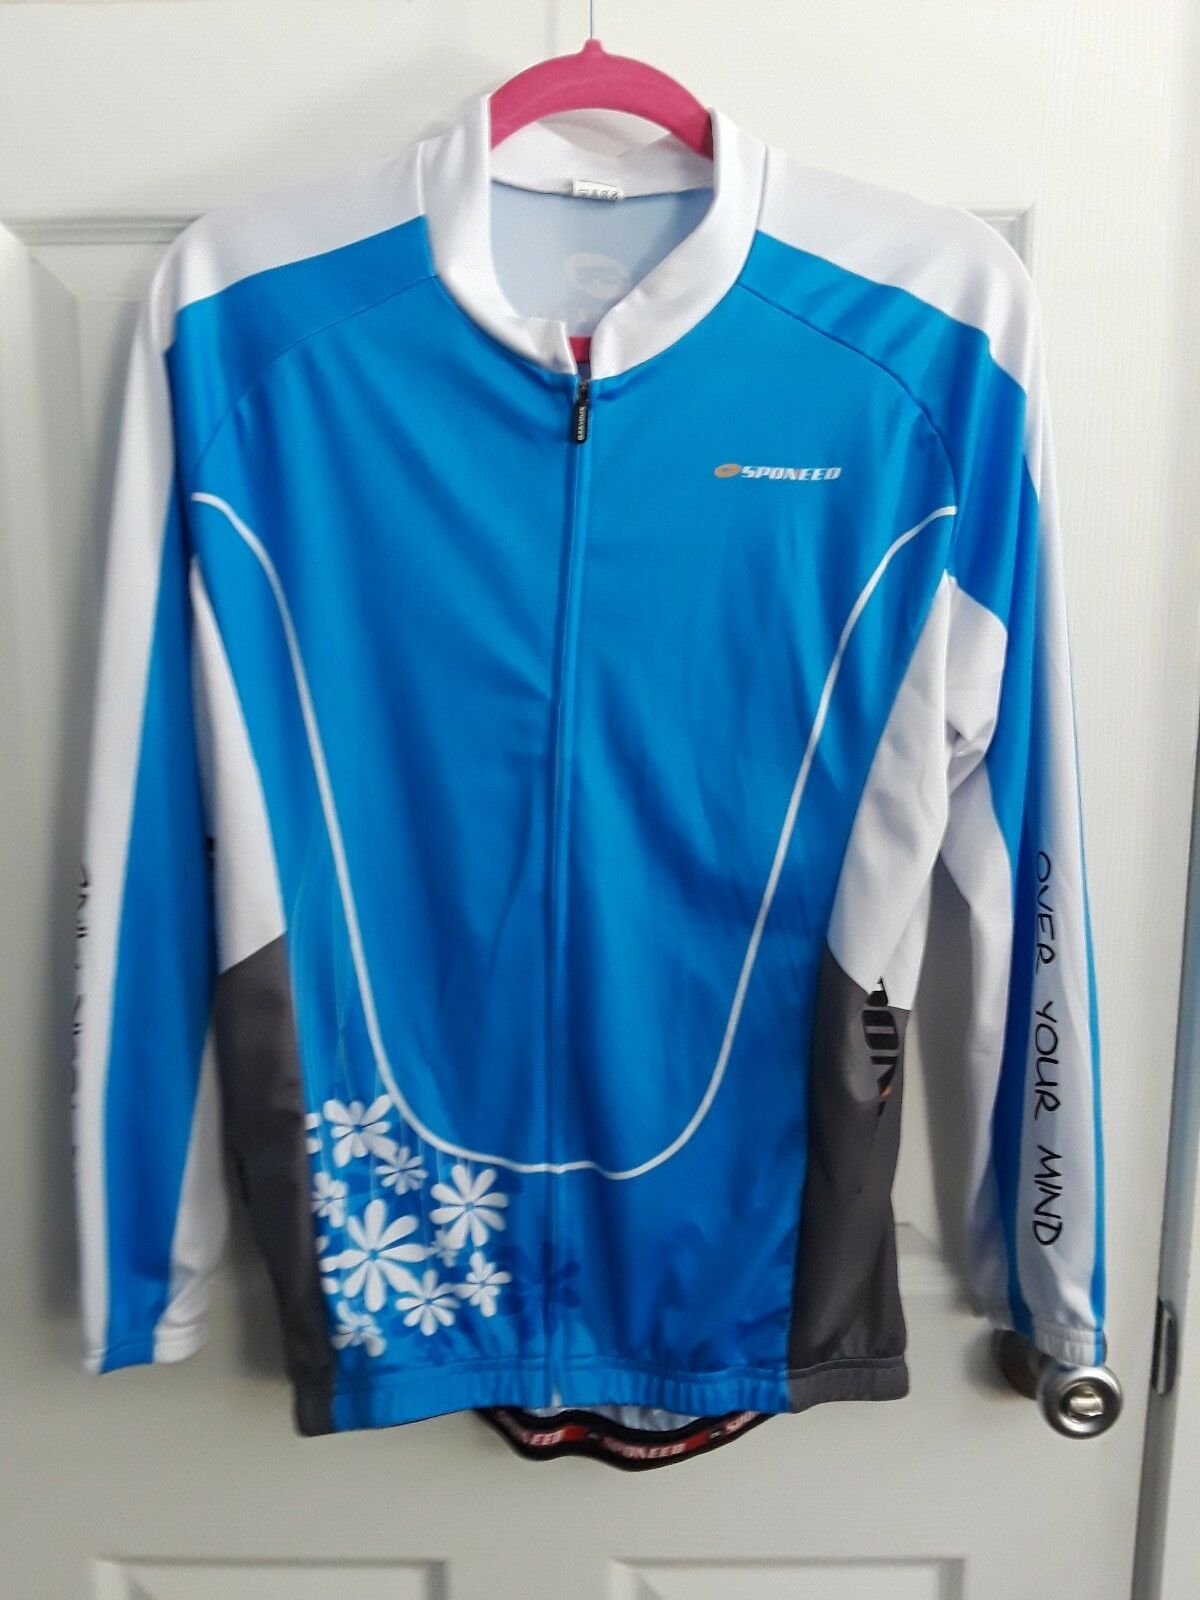 Cycling Long Sleeve Jersey and Pants - Women's Large - with flower detail